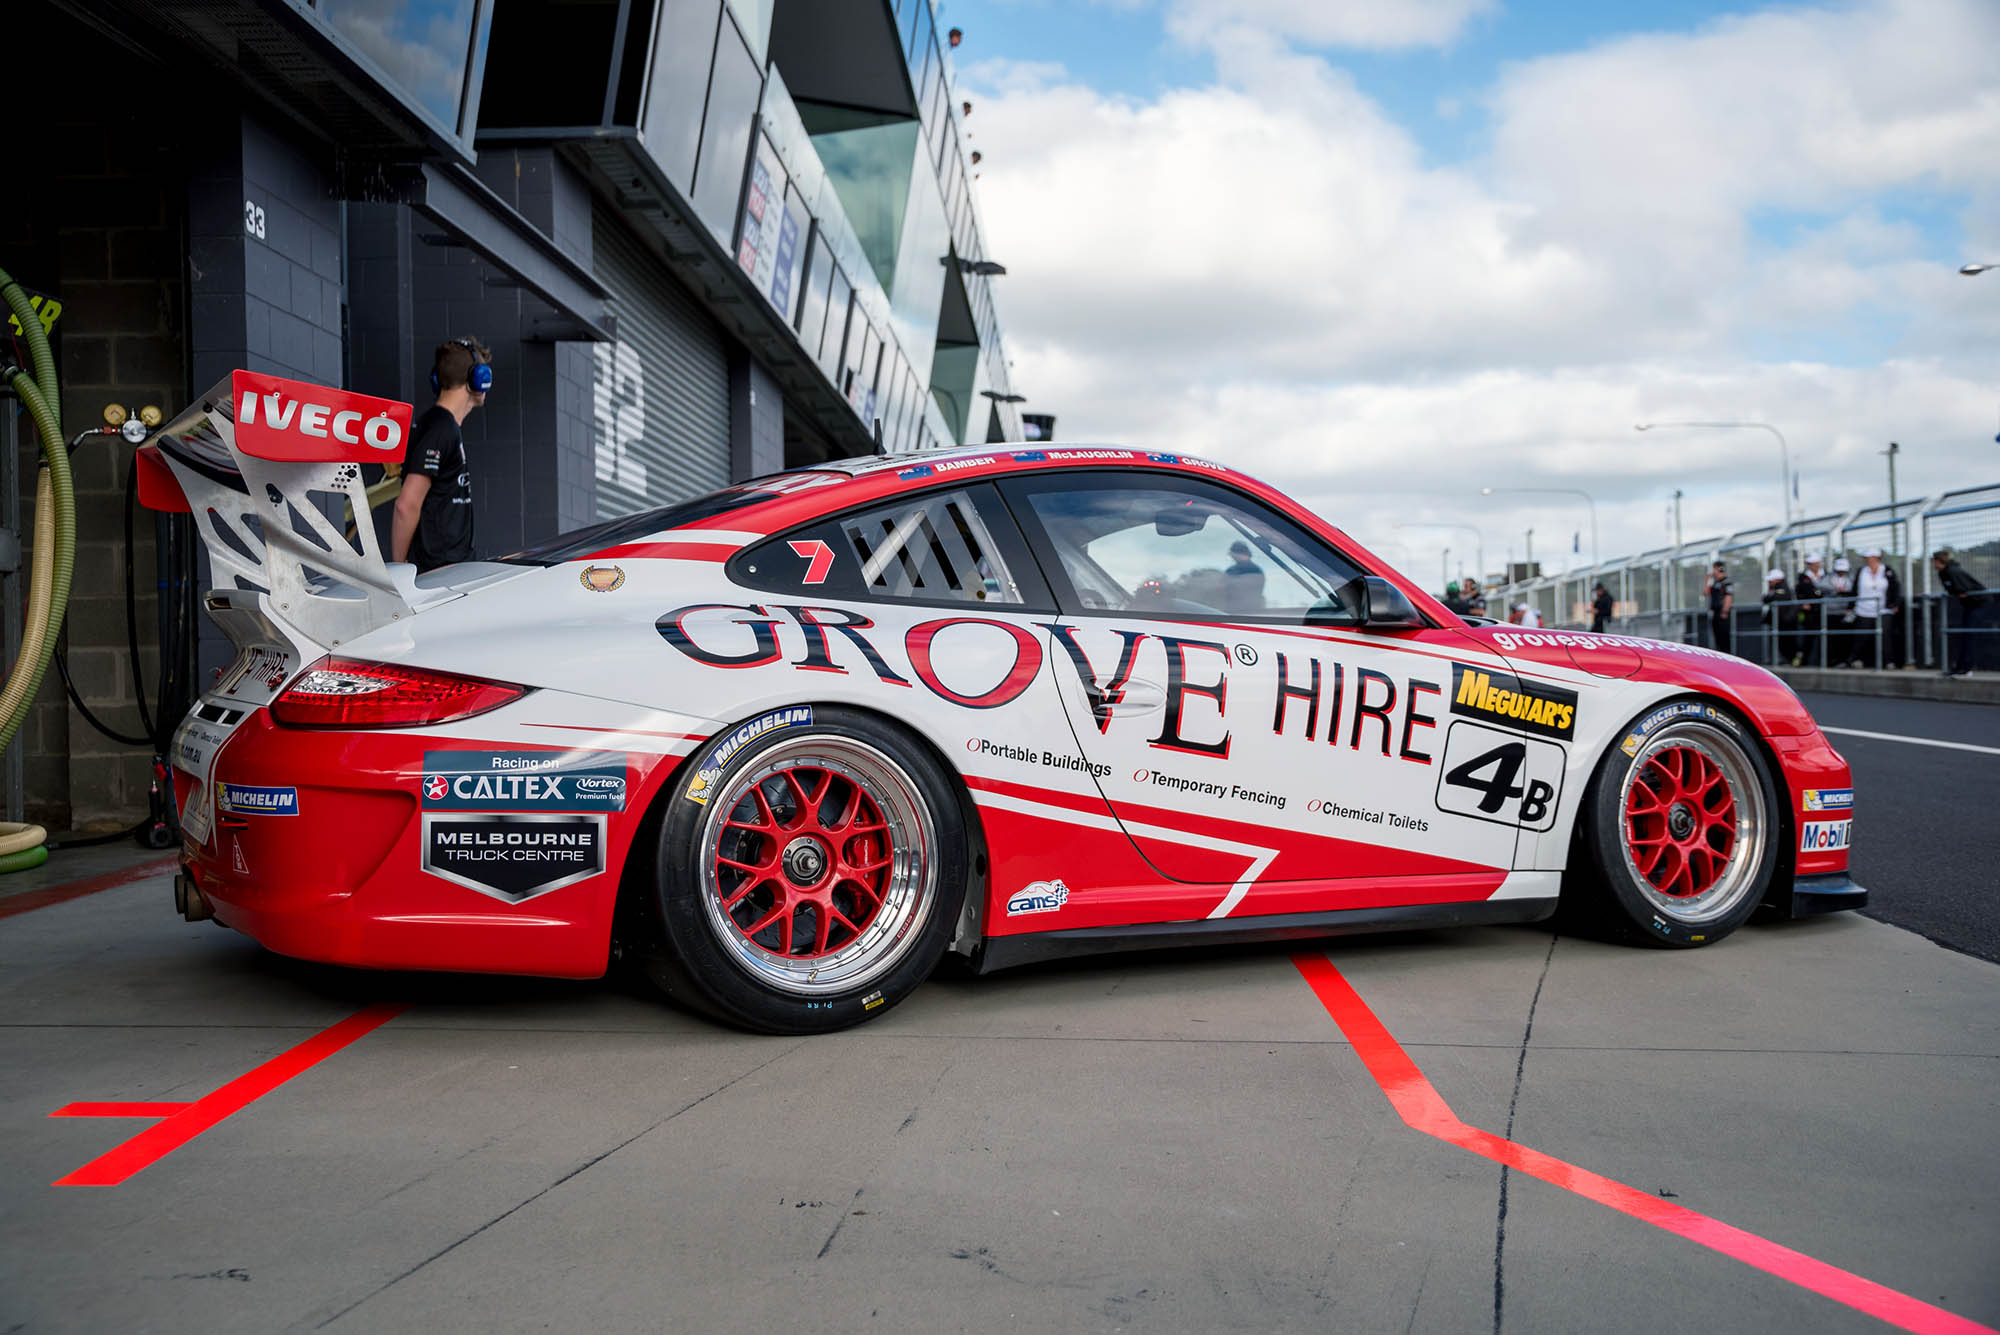 The Grove Racing Porsche is seen at the Mount Panorama circuit in Bathurst